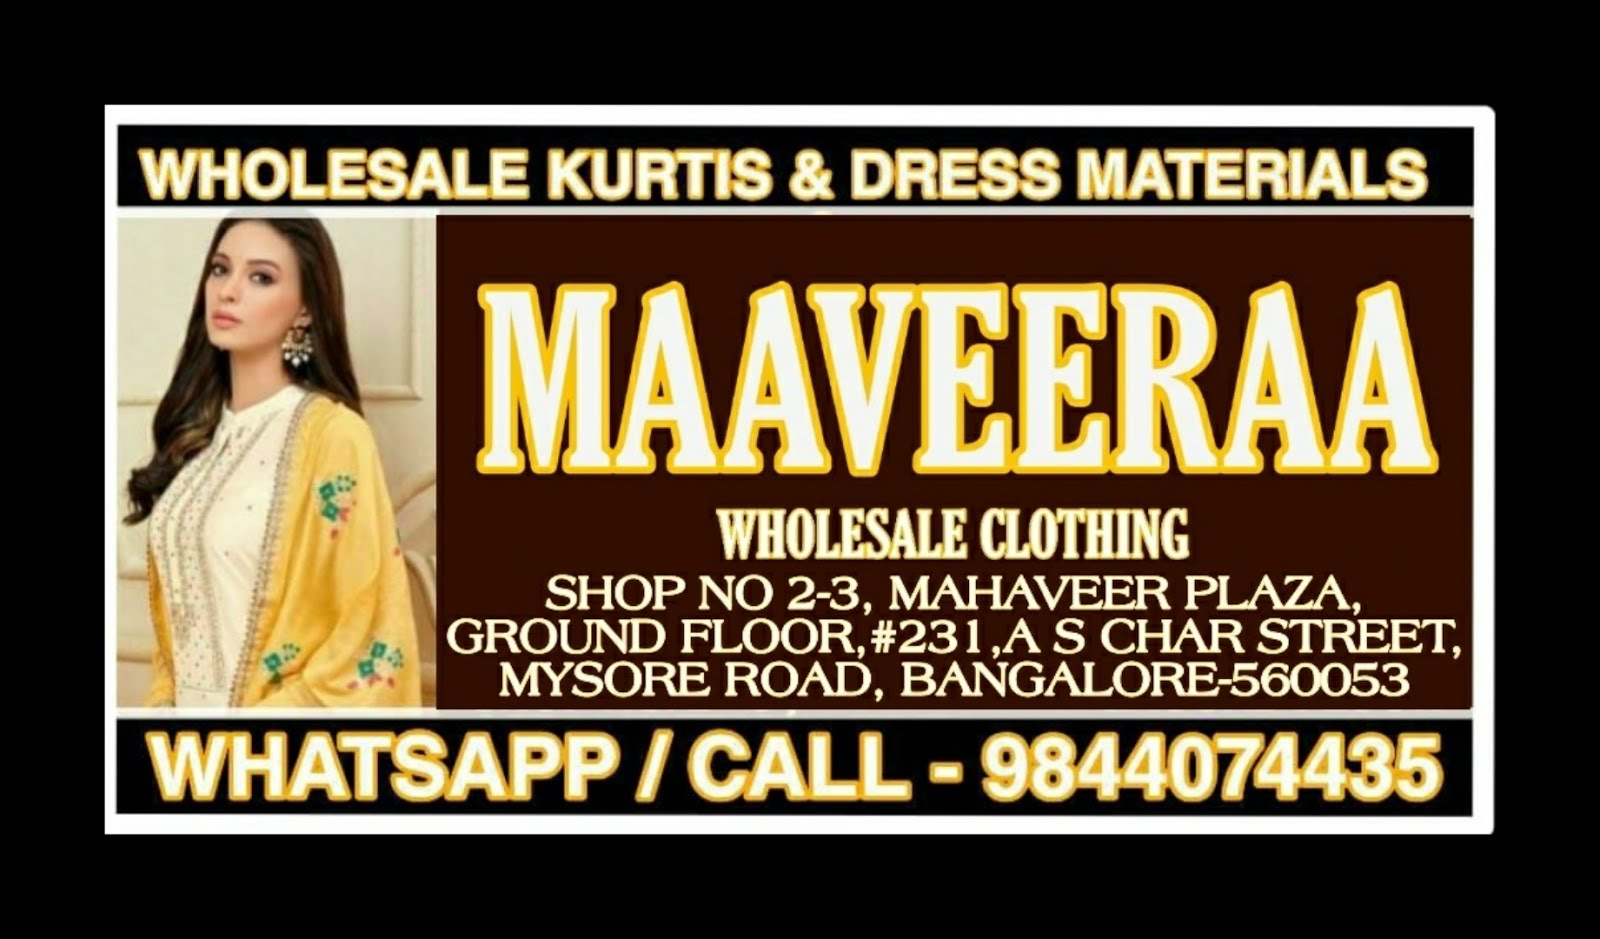 (VS-GROUP)MAAVEERAA WHOLESALE CLOTHING-KURTIS AND DRESS MATERIALS